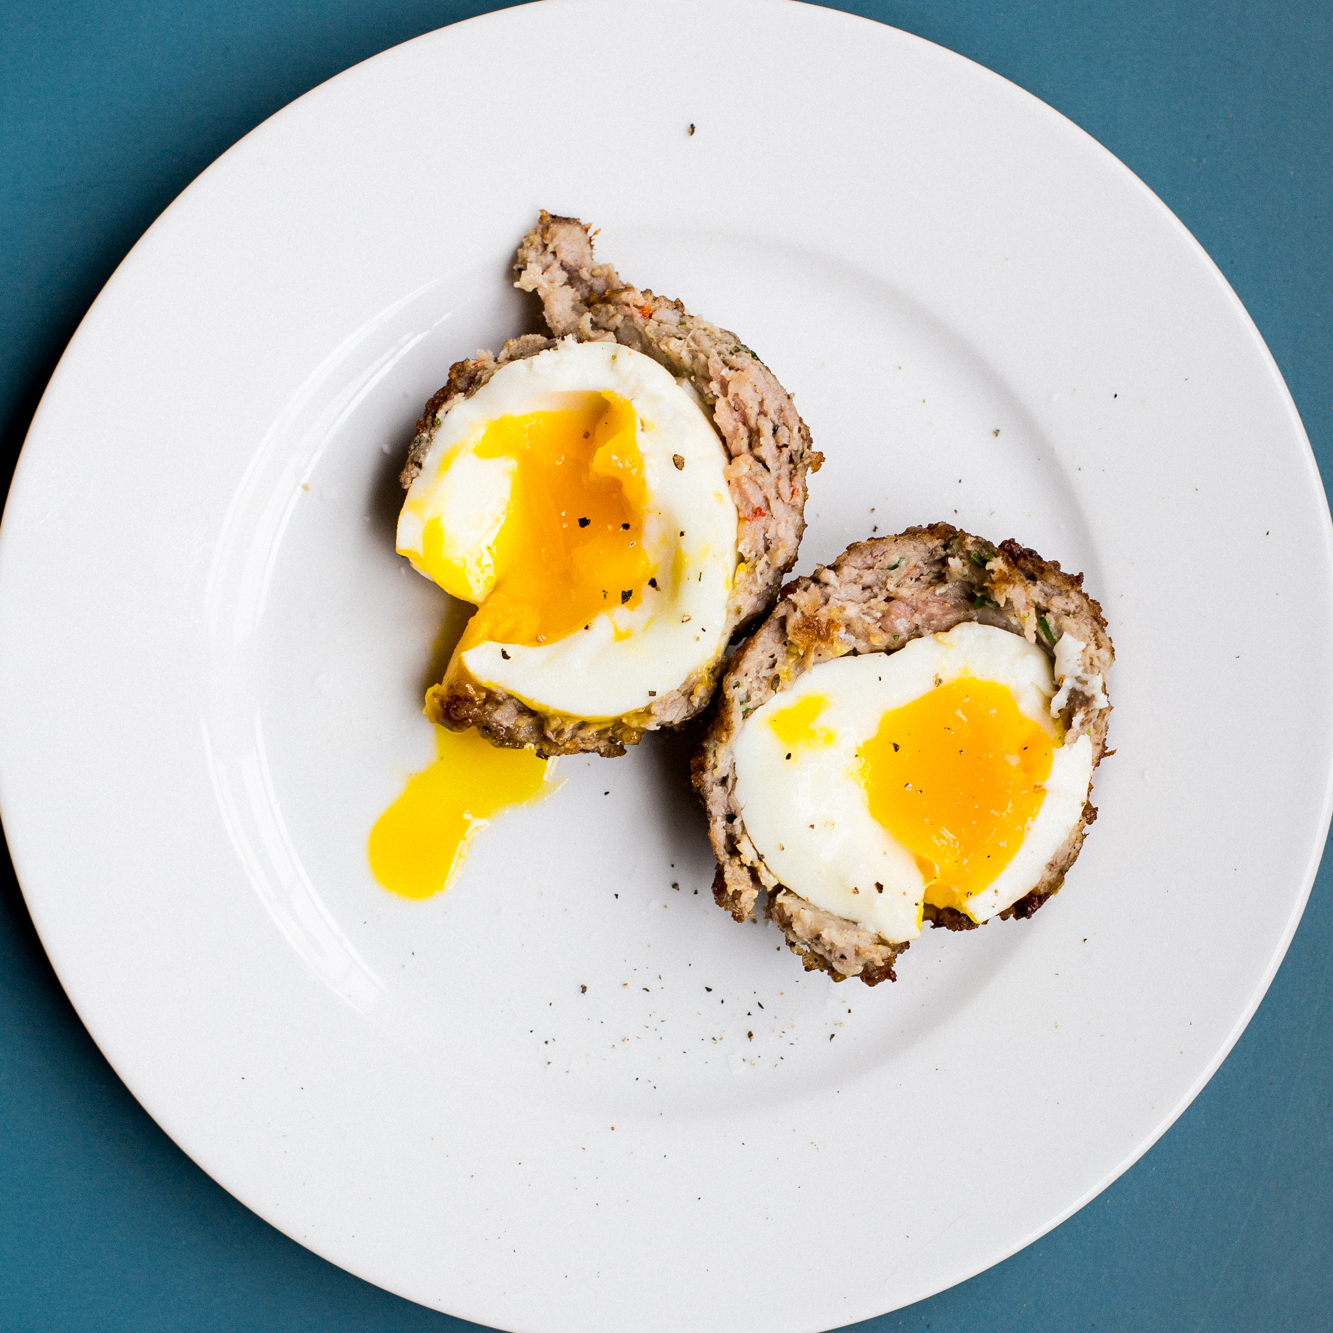 201501-r-soft-boiled-scotch-eggs.jpg